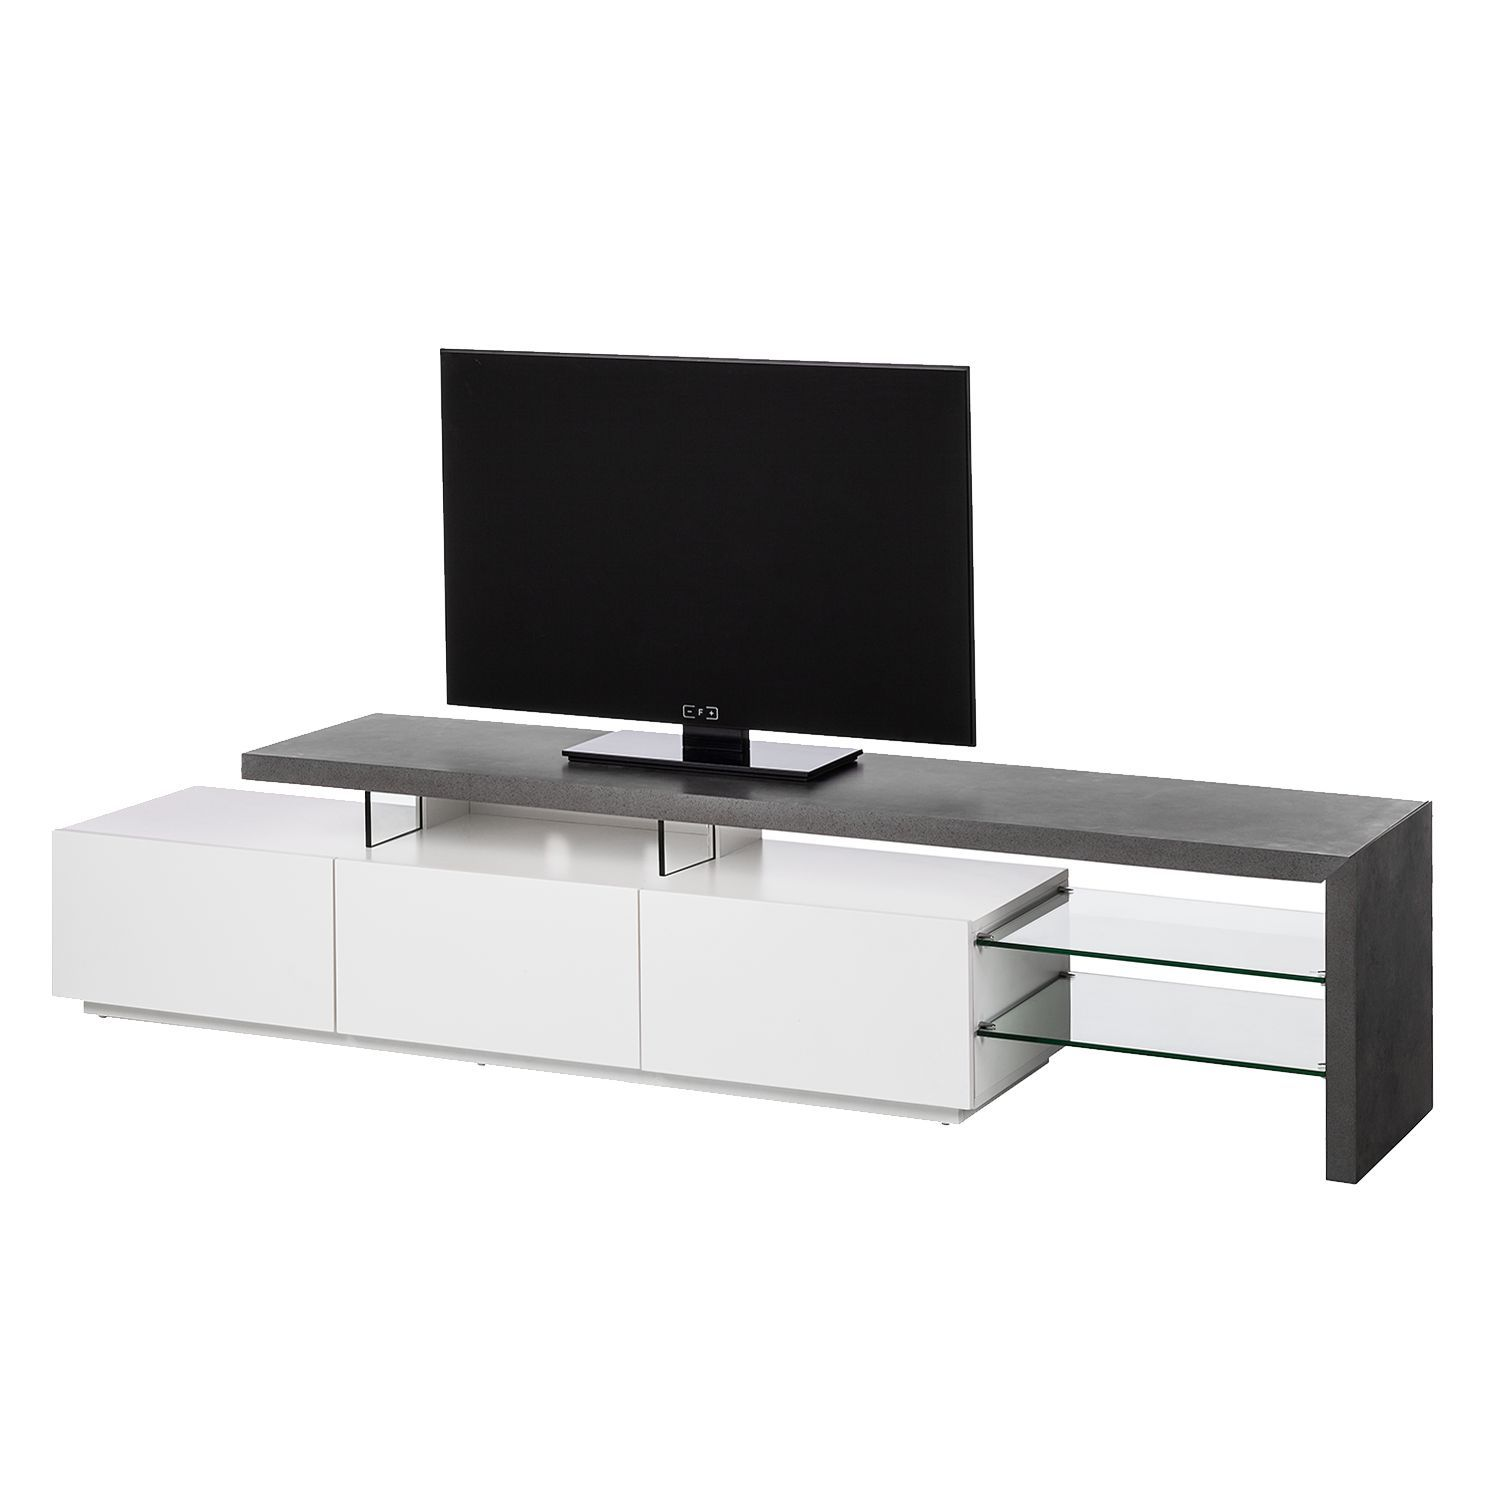 Sideboard Creme Matt Lowboard Wei Matt Affordable Kommode Schmal Weia